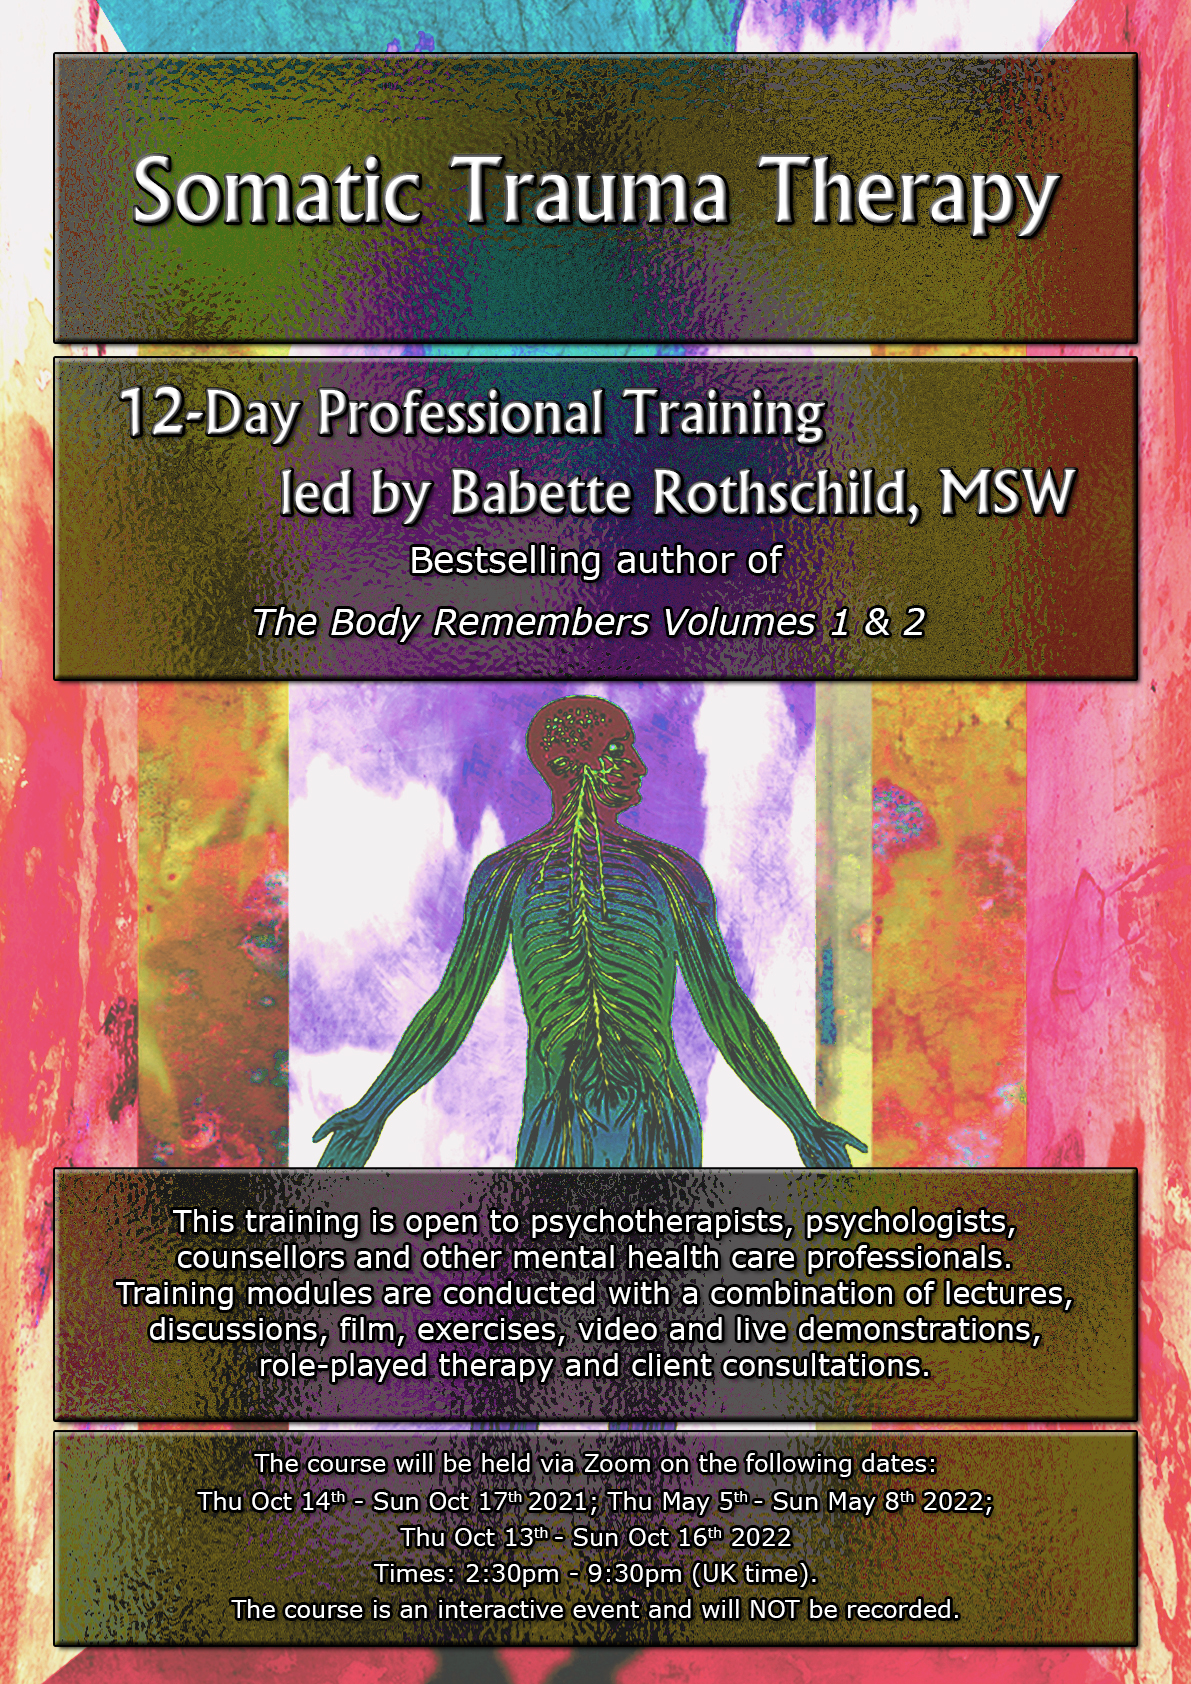 12-Day Online Course in Somatic Trauma Therapy